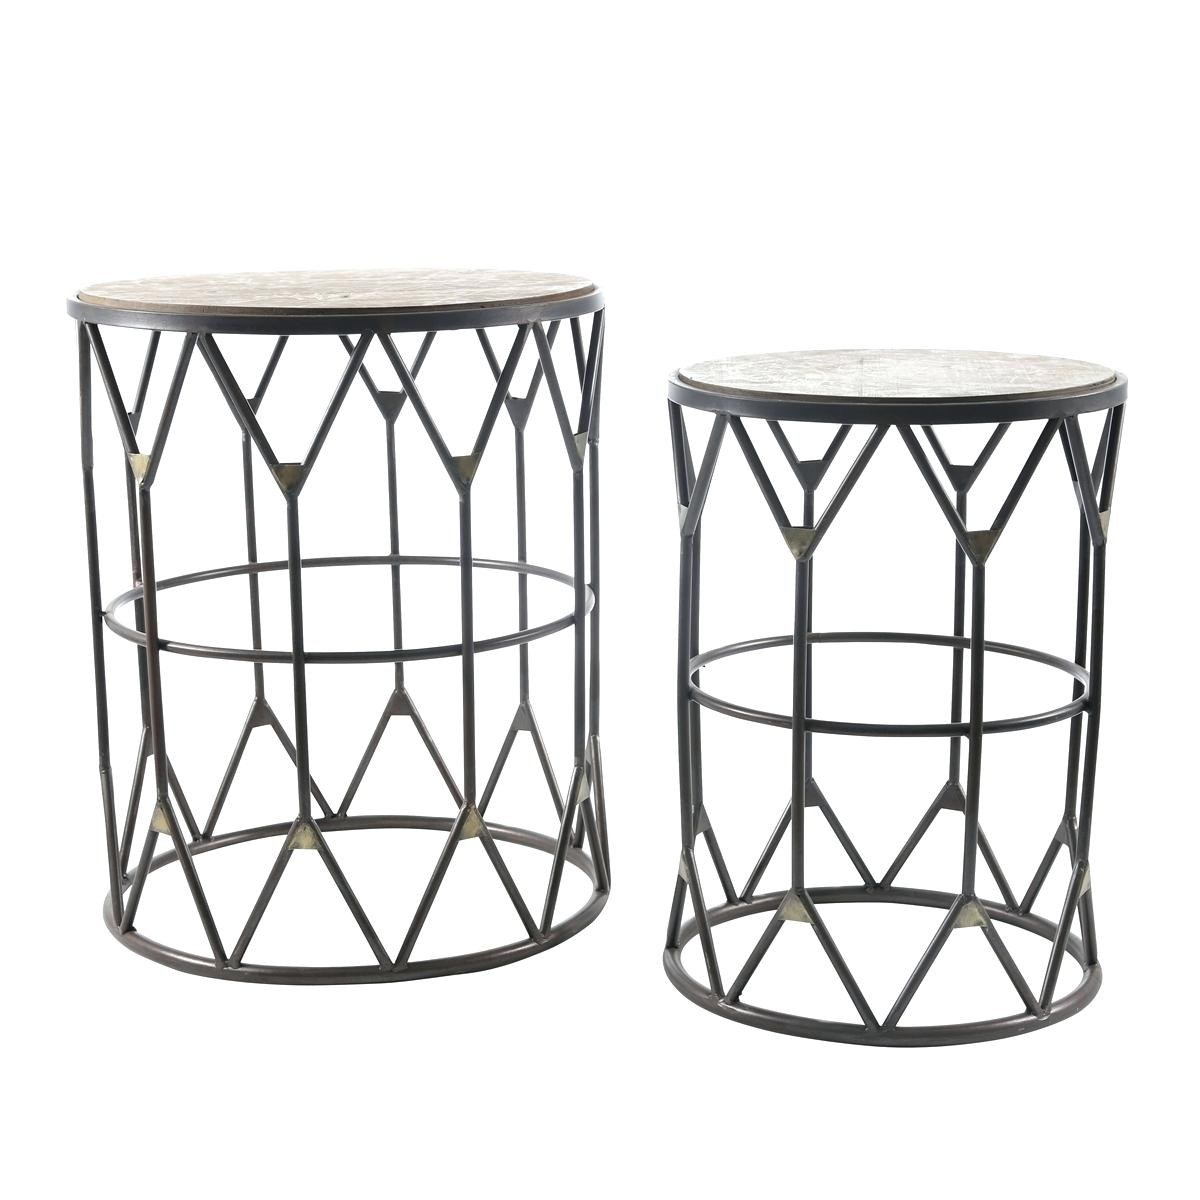 round metal accent table tables wood top target white black mirrored chest couch ideas modern and glass coffee barn style corner bench dining set room with leaf umbrella stand